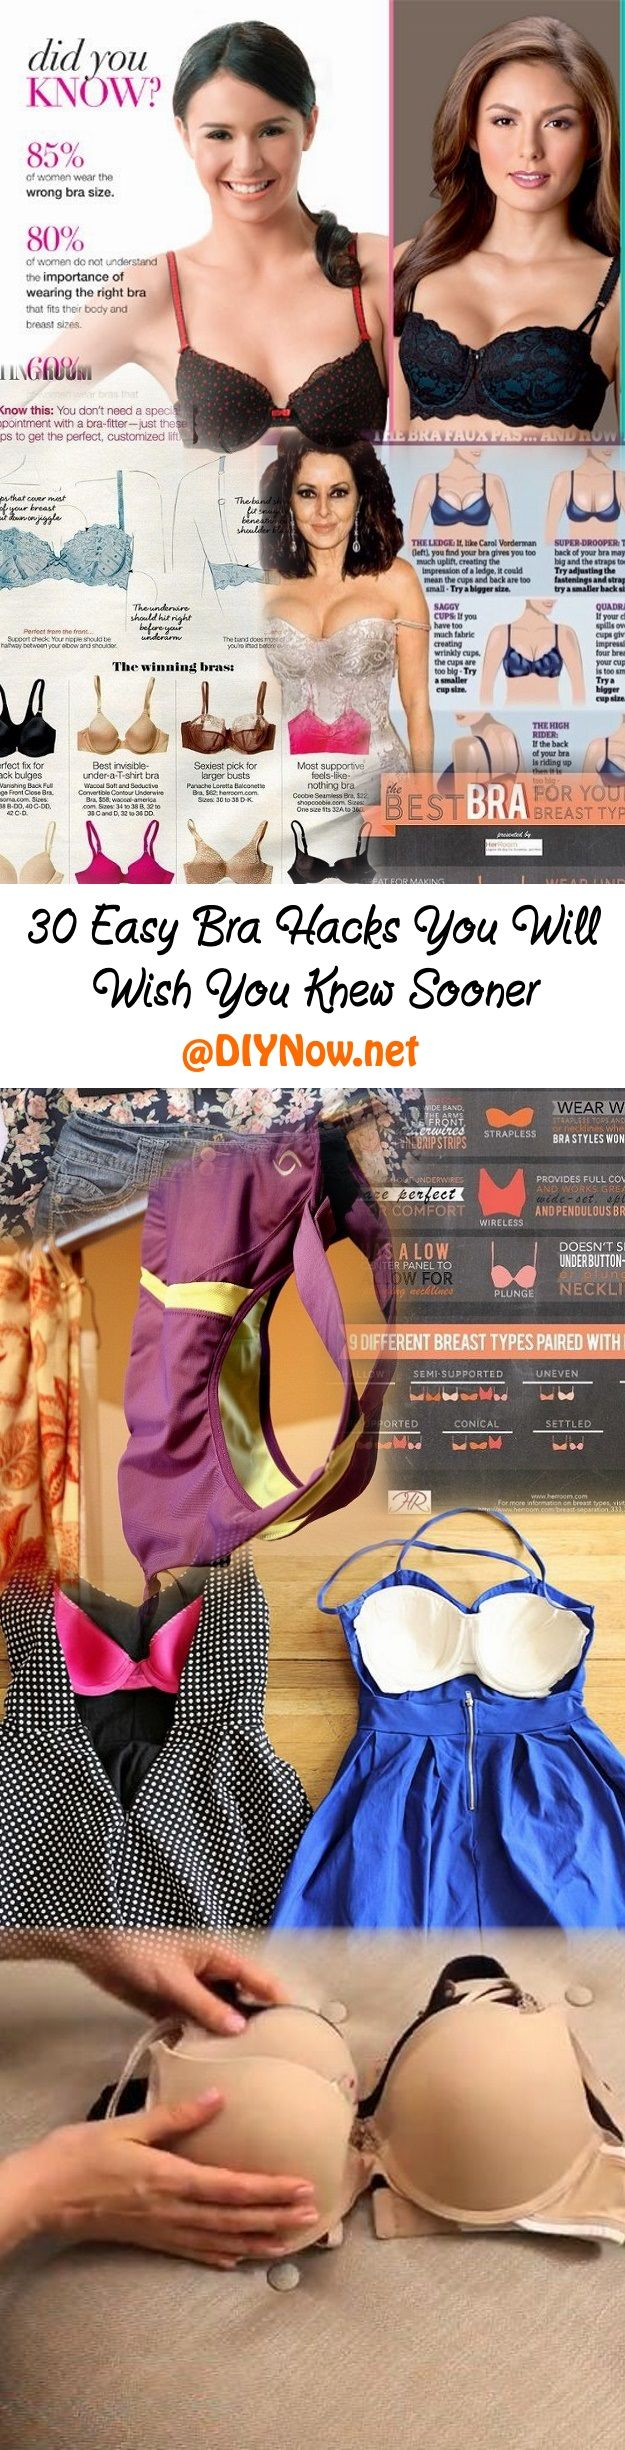 30 Easy Bra Hacks You Will Wish You Knew Sooner